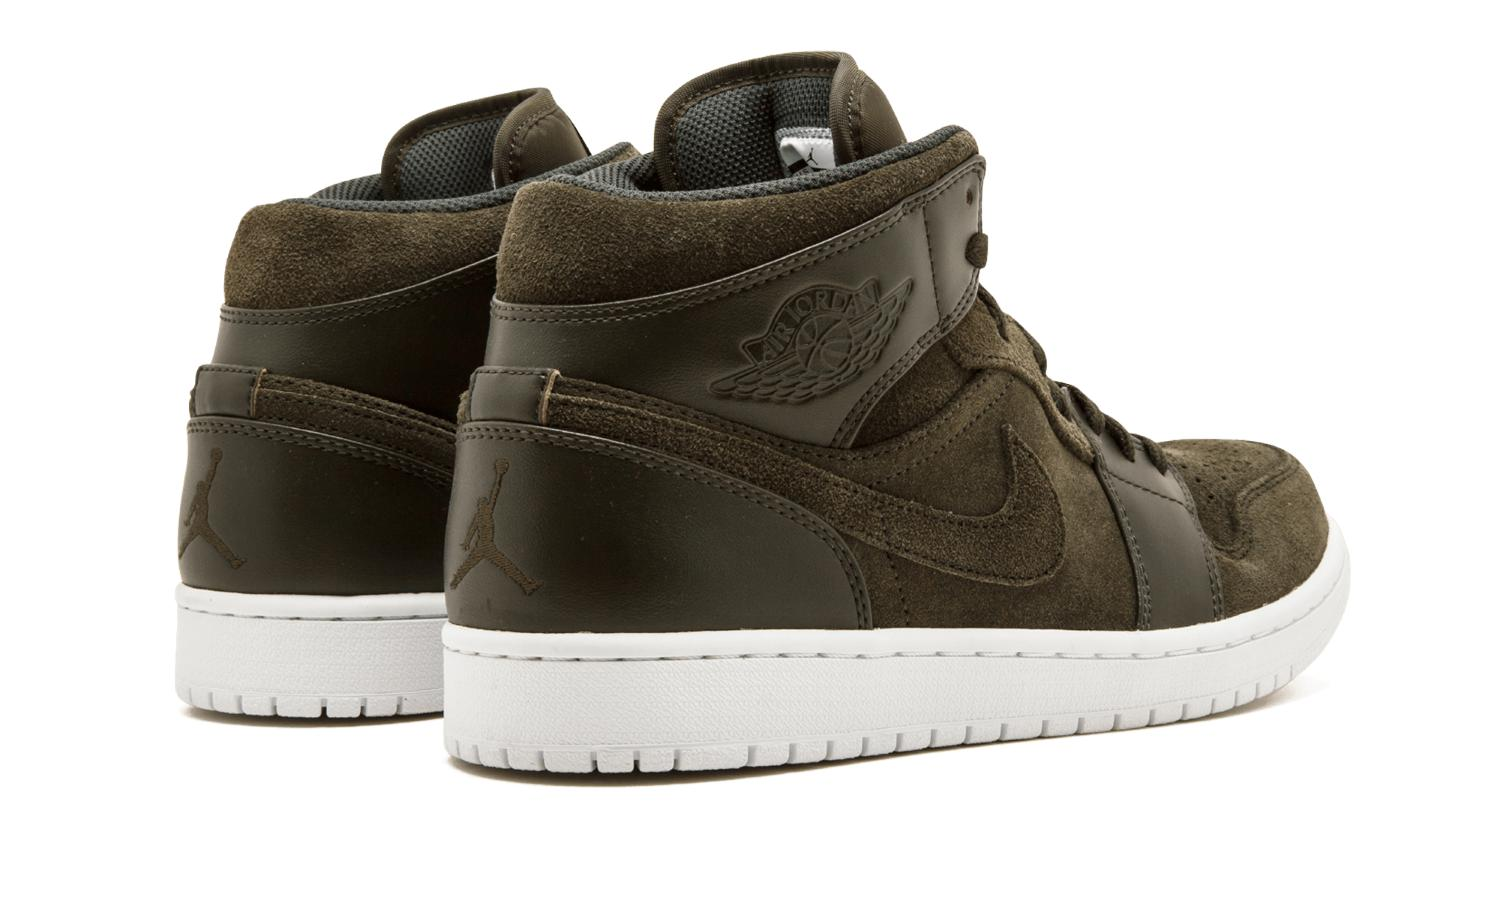 9a55d0aaaa01ed Lyst - Nike Air Jordan 1 Mid Suede High Top Basketball Shoes for Men